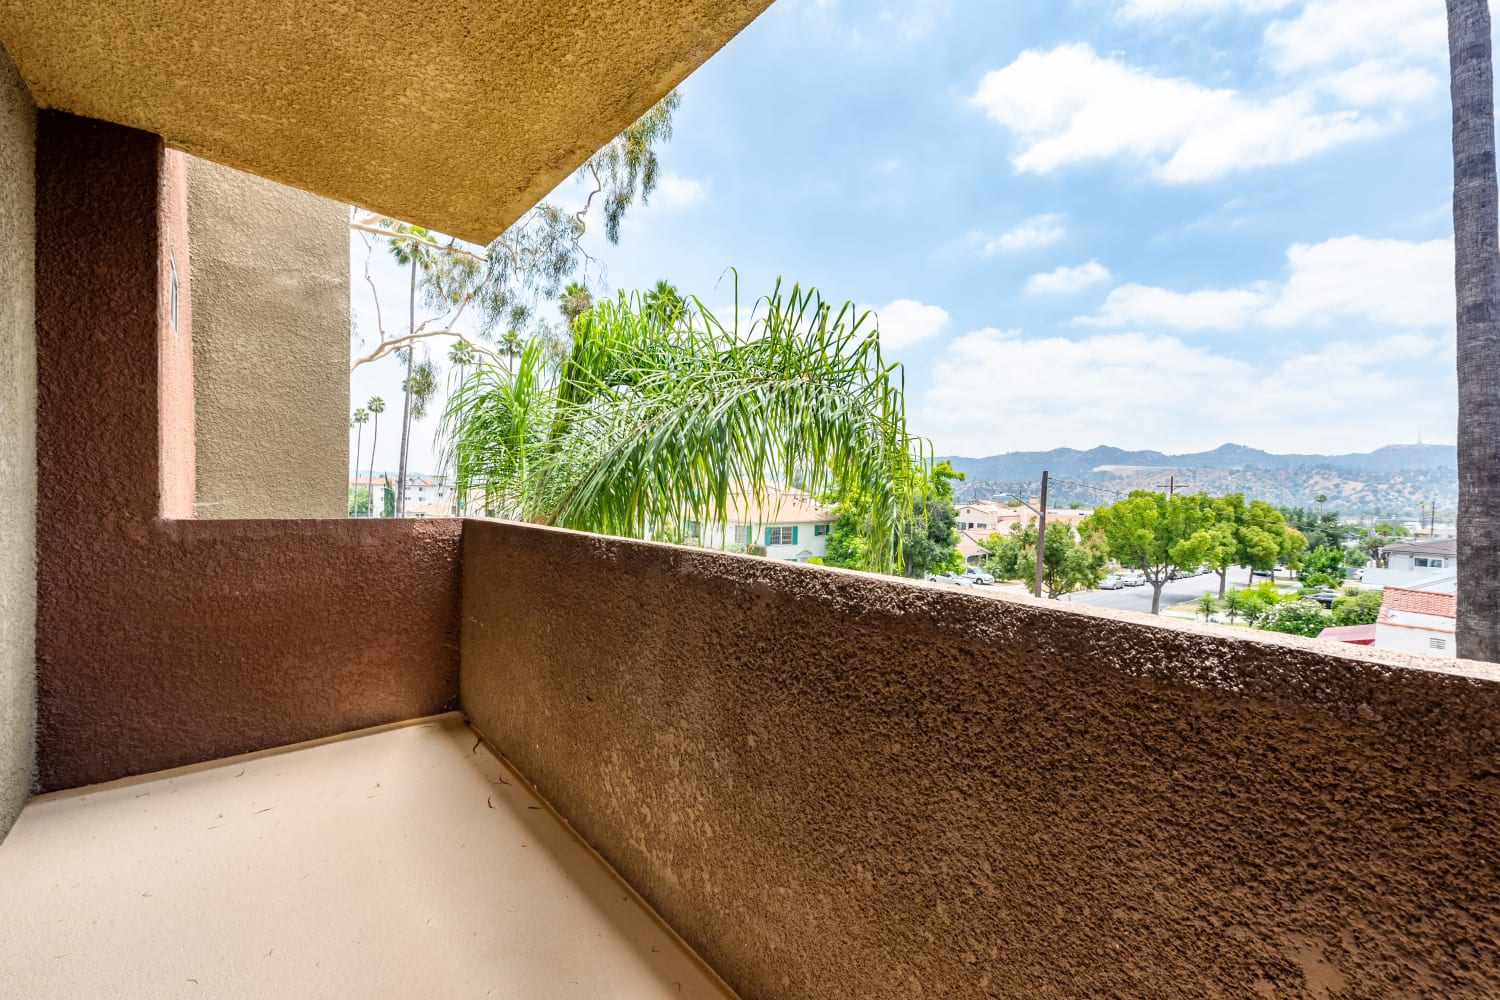 Private Balcony at Apartments in Glendale, California